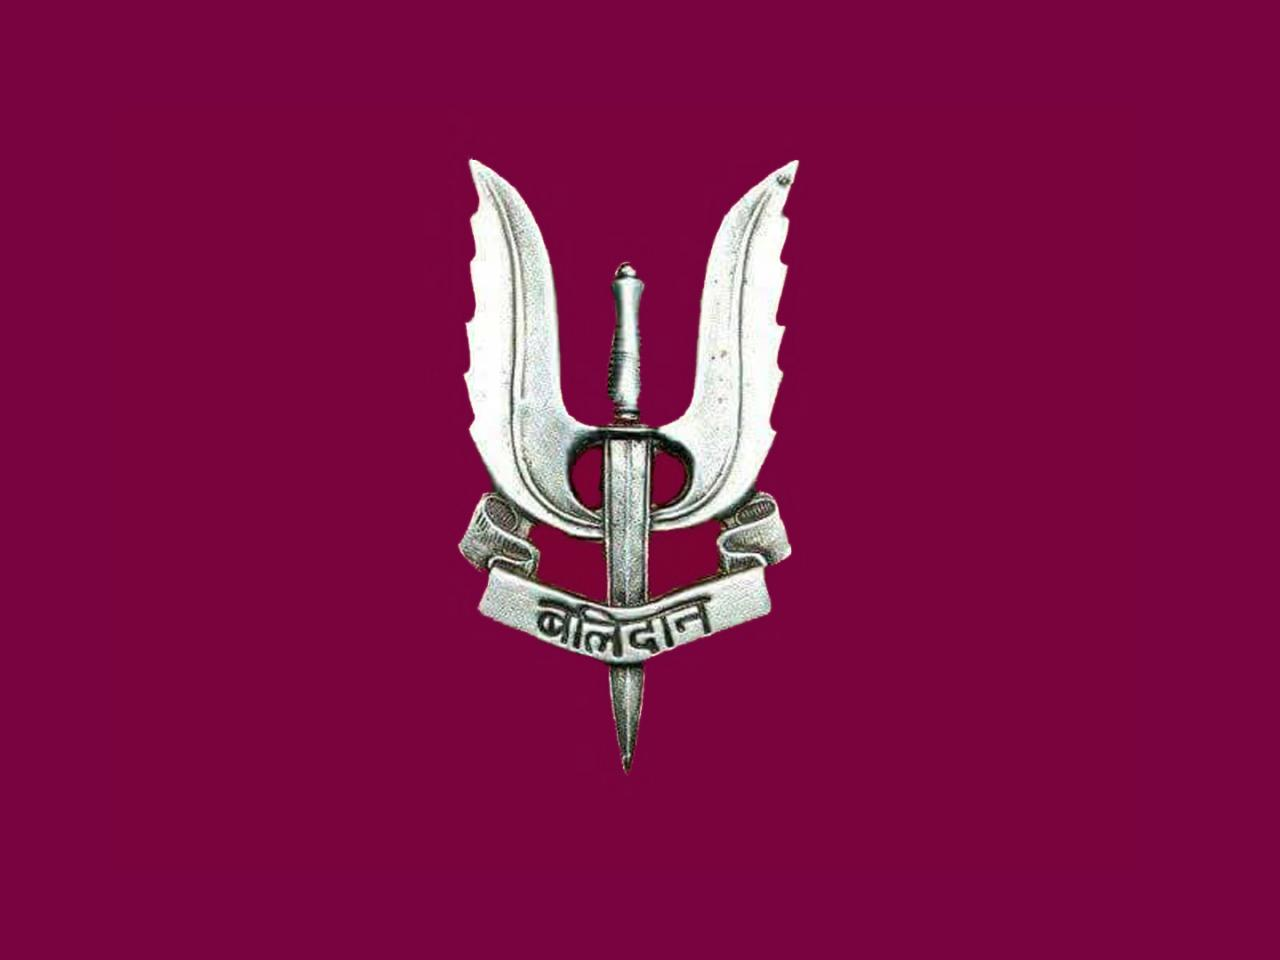 Hd Wallpapers Indian Air Force Logo Love Couple Wallpaper Ltmodele Co